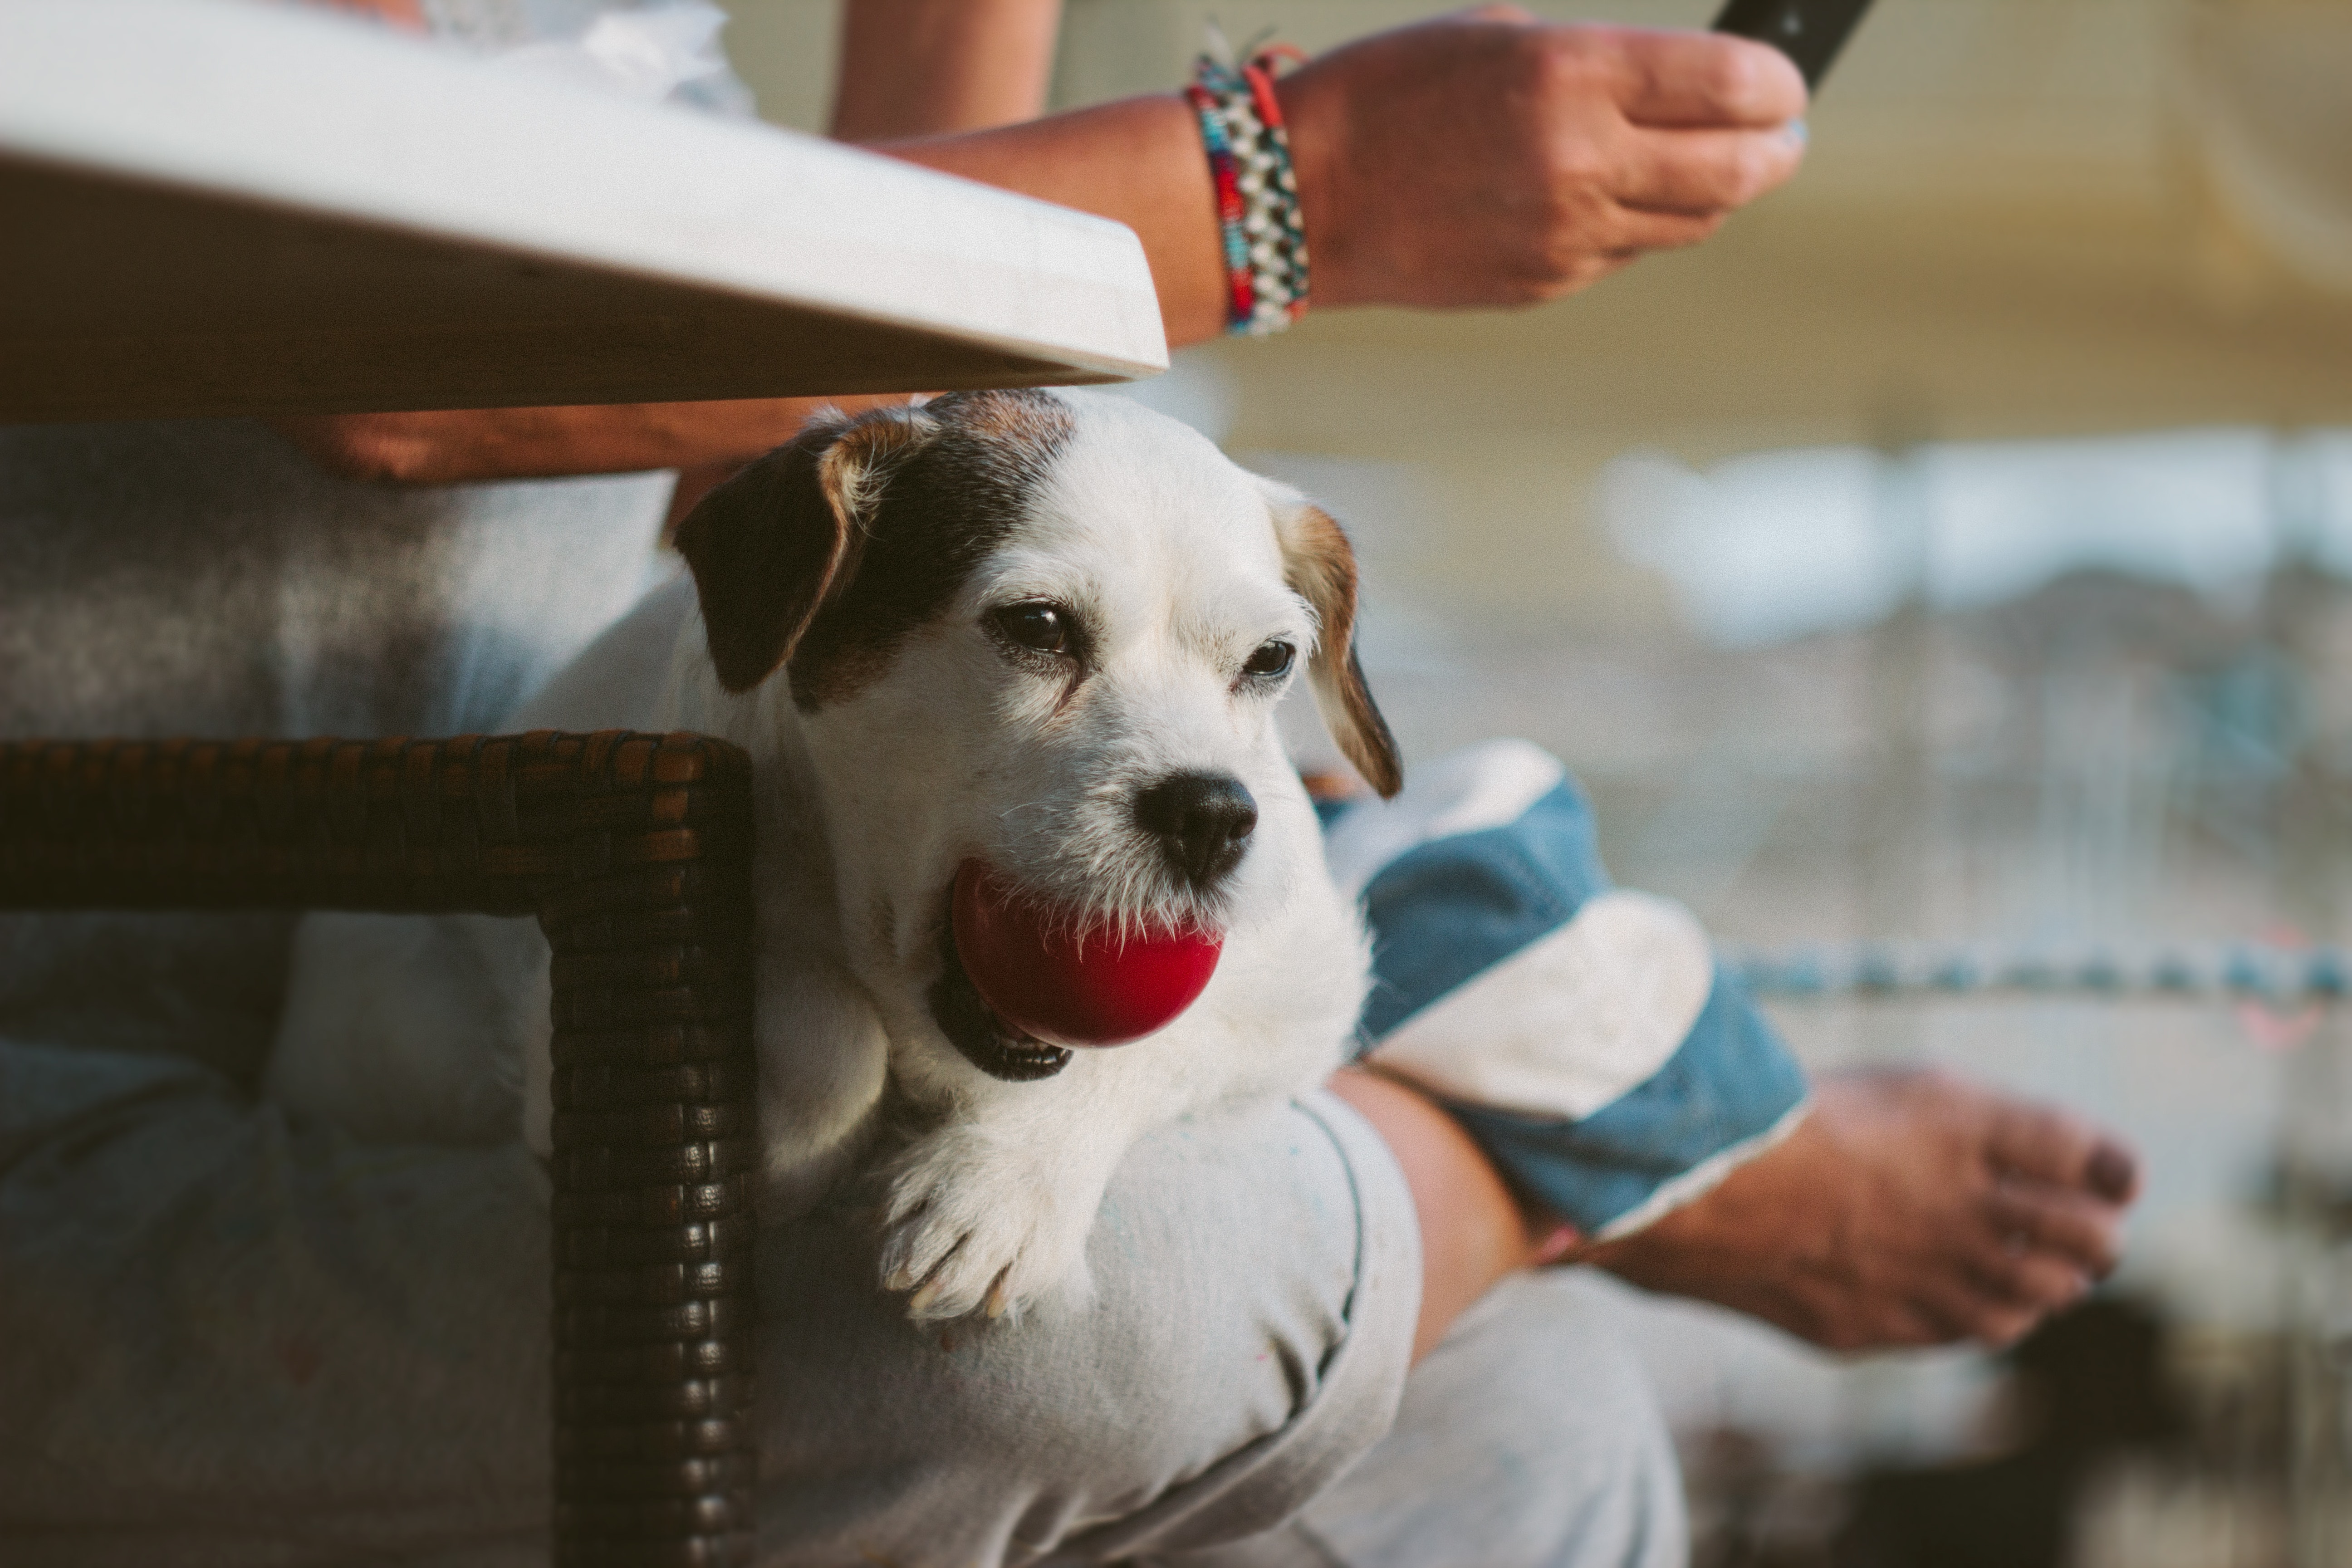 White Tank Long Coat Puppy Dog on Person's Lap With Ball in Mout, Adult, Mammal, Wear, Sit, HQ Photo